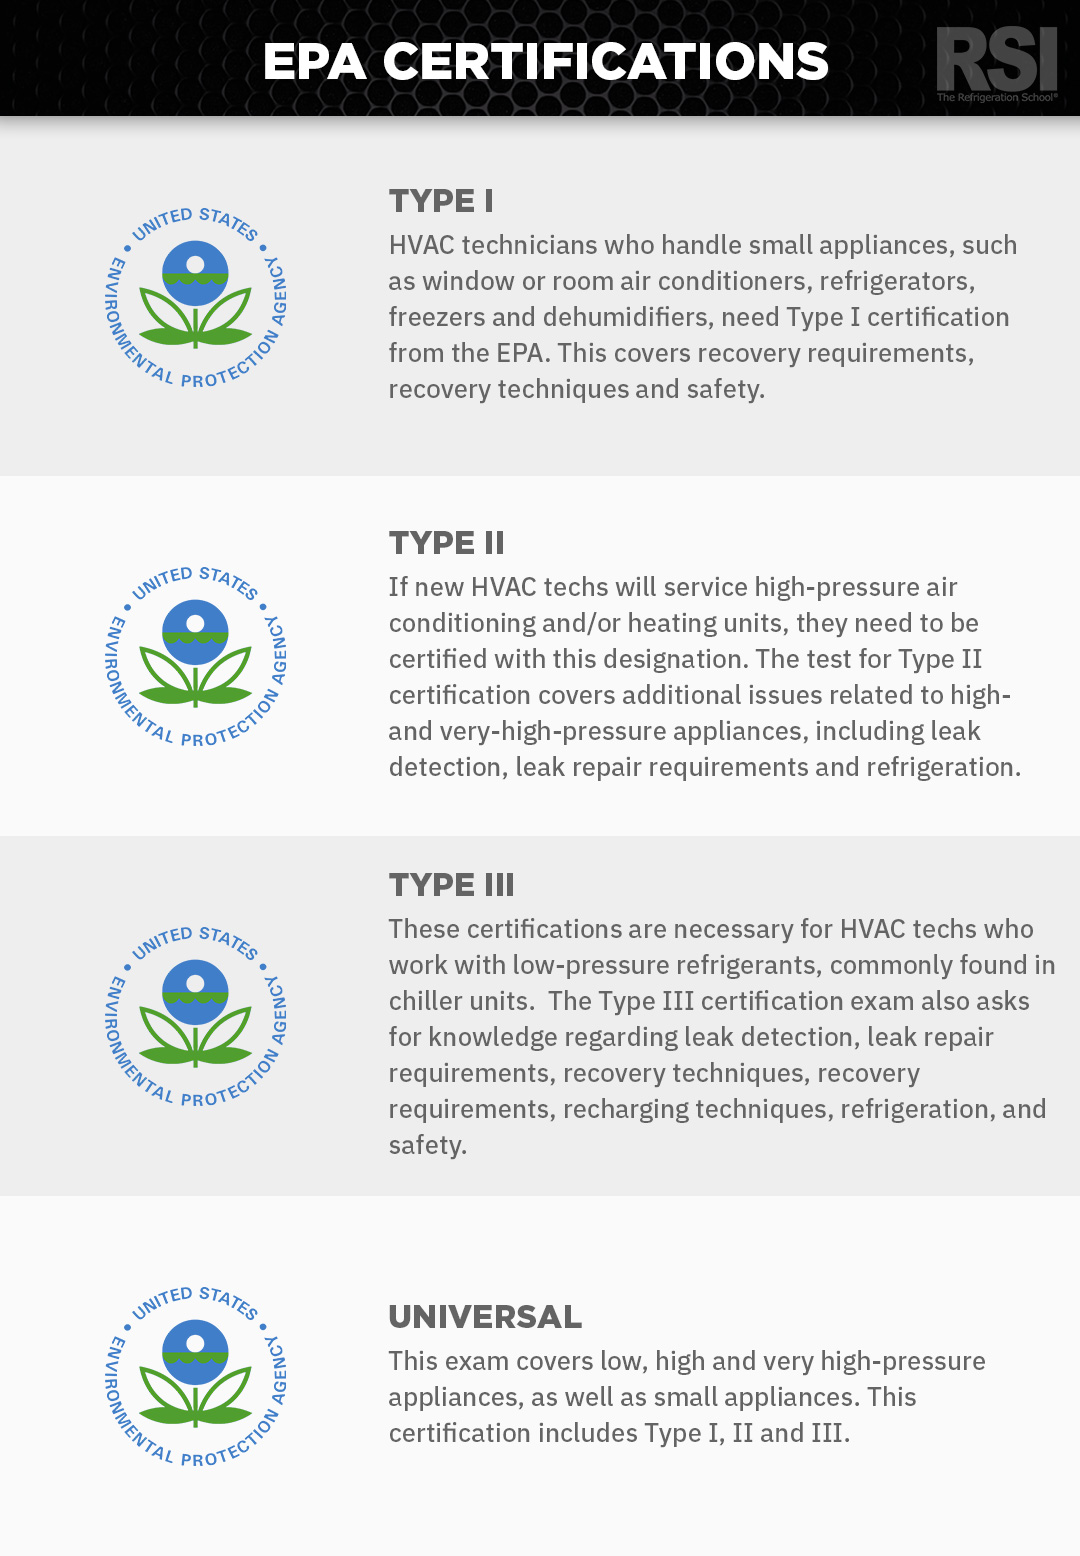 Types of HVAC Certification | The Refrigeration School (RSI)